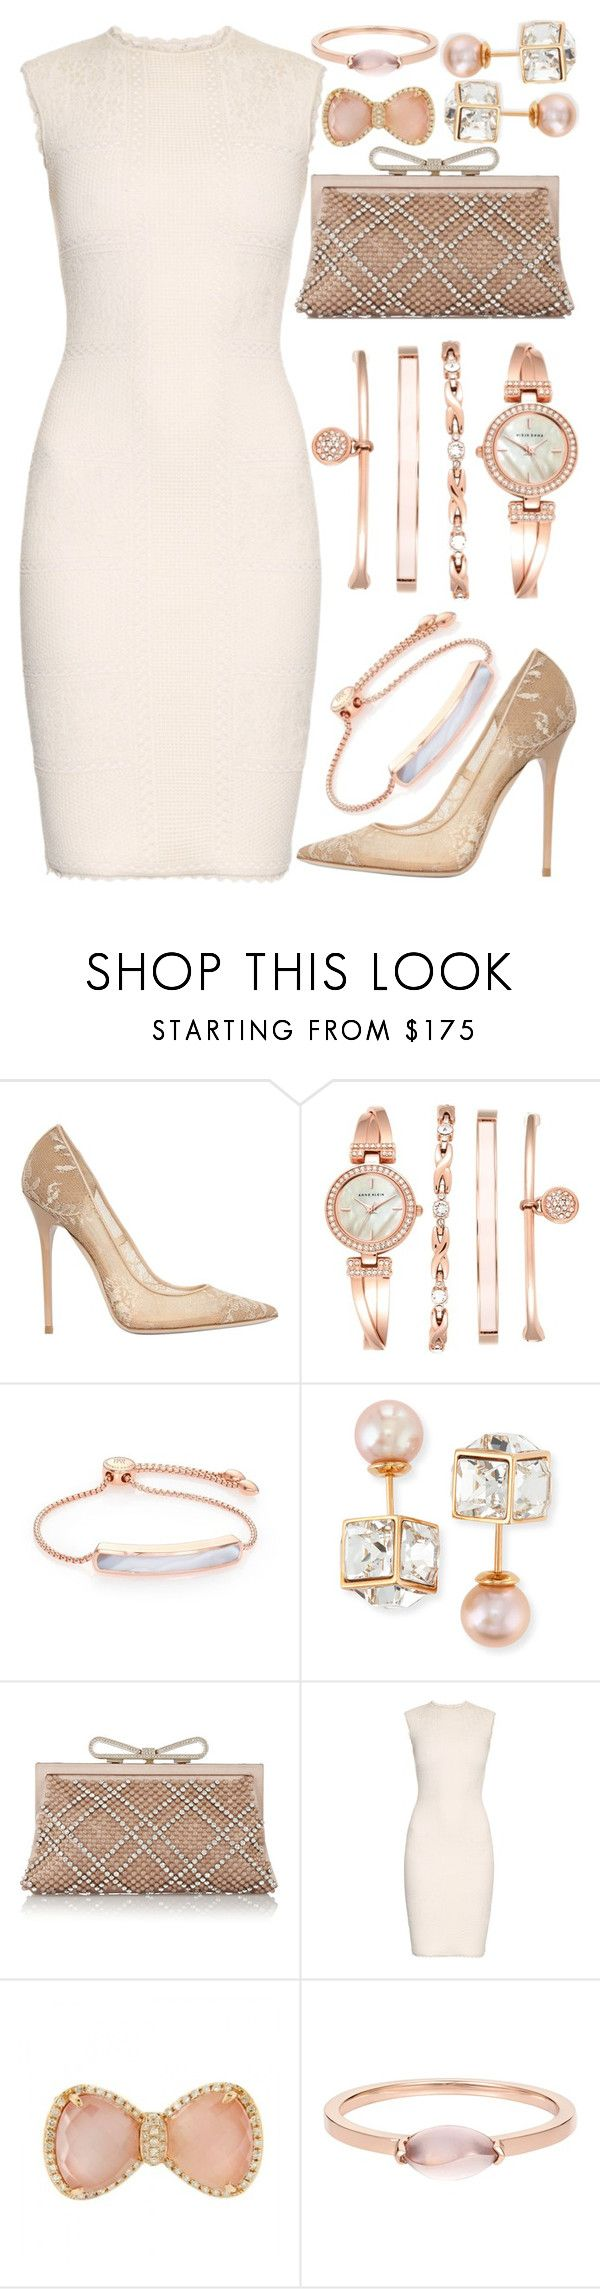 """Pretty In Pink"" by mrs-rc ❤ liked on Polyvore featuring Jimmy Choo, Anne Klein, Monica Vinader, Vita Fede, Valentino, Alexander McQueen, Pink, dress, lace and rosegold"